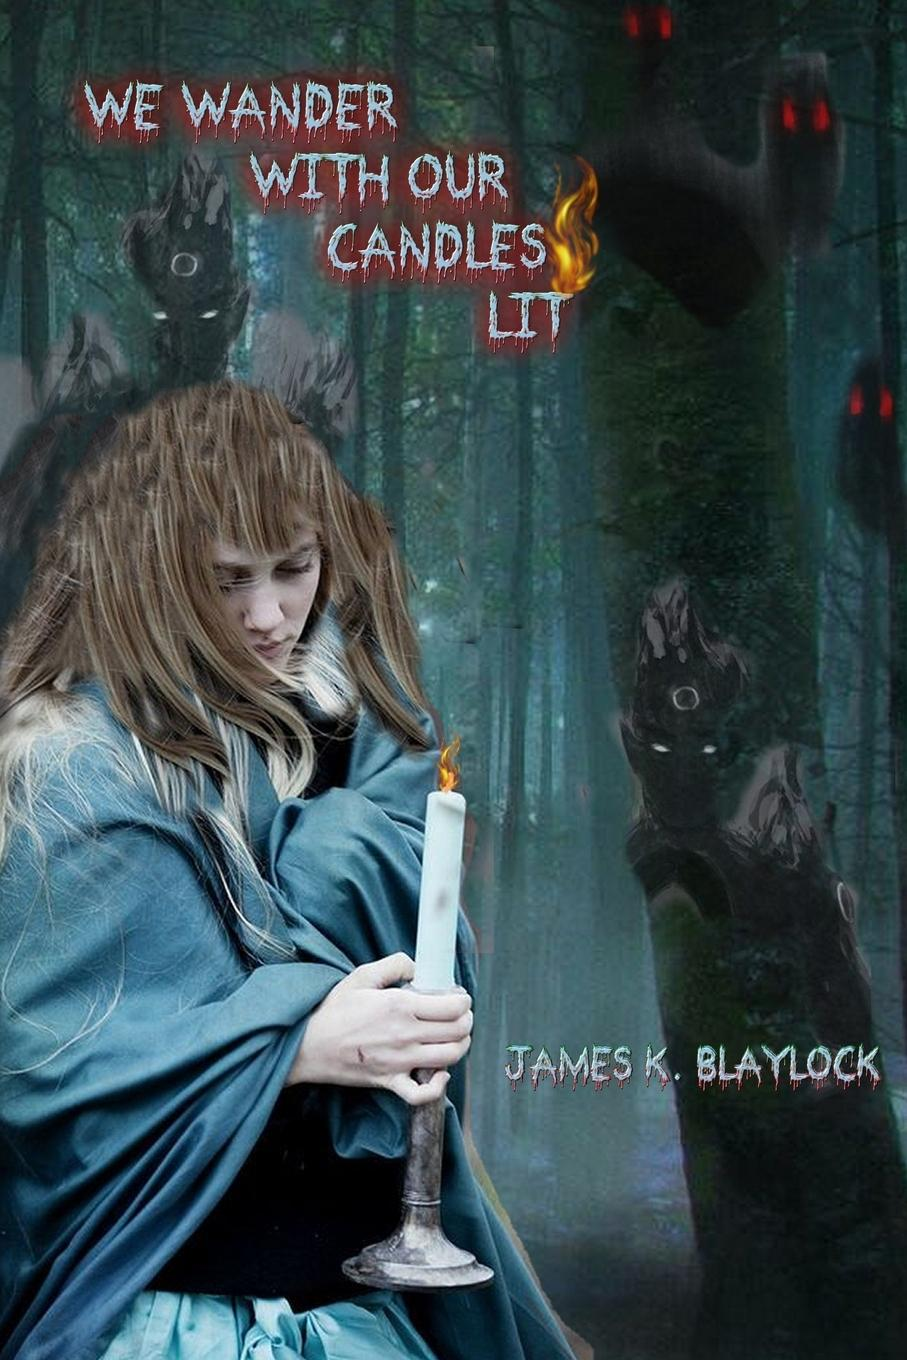 JAMES K. BLAYLOCK WE WANDER WITH OUR CANDLES LIT cait london blaylock s bride